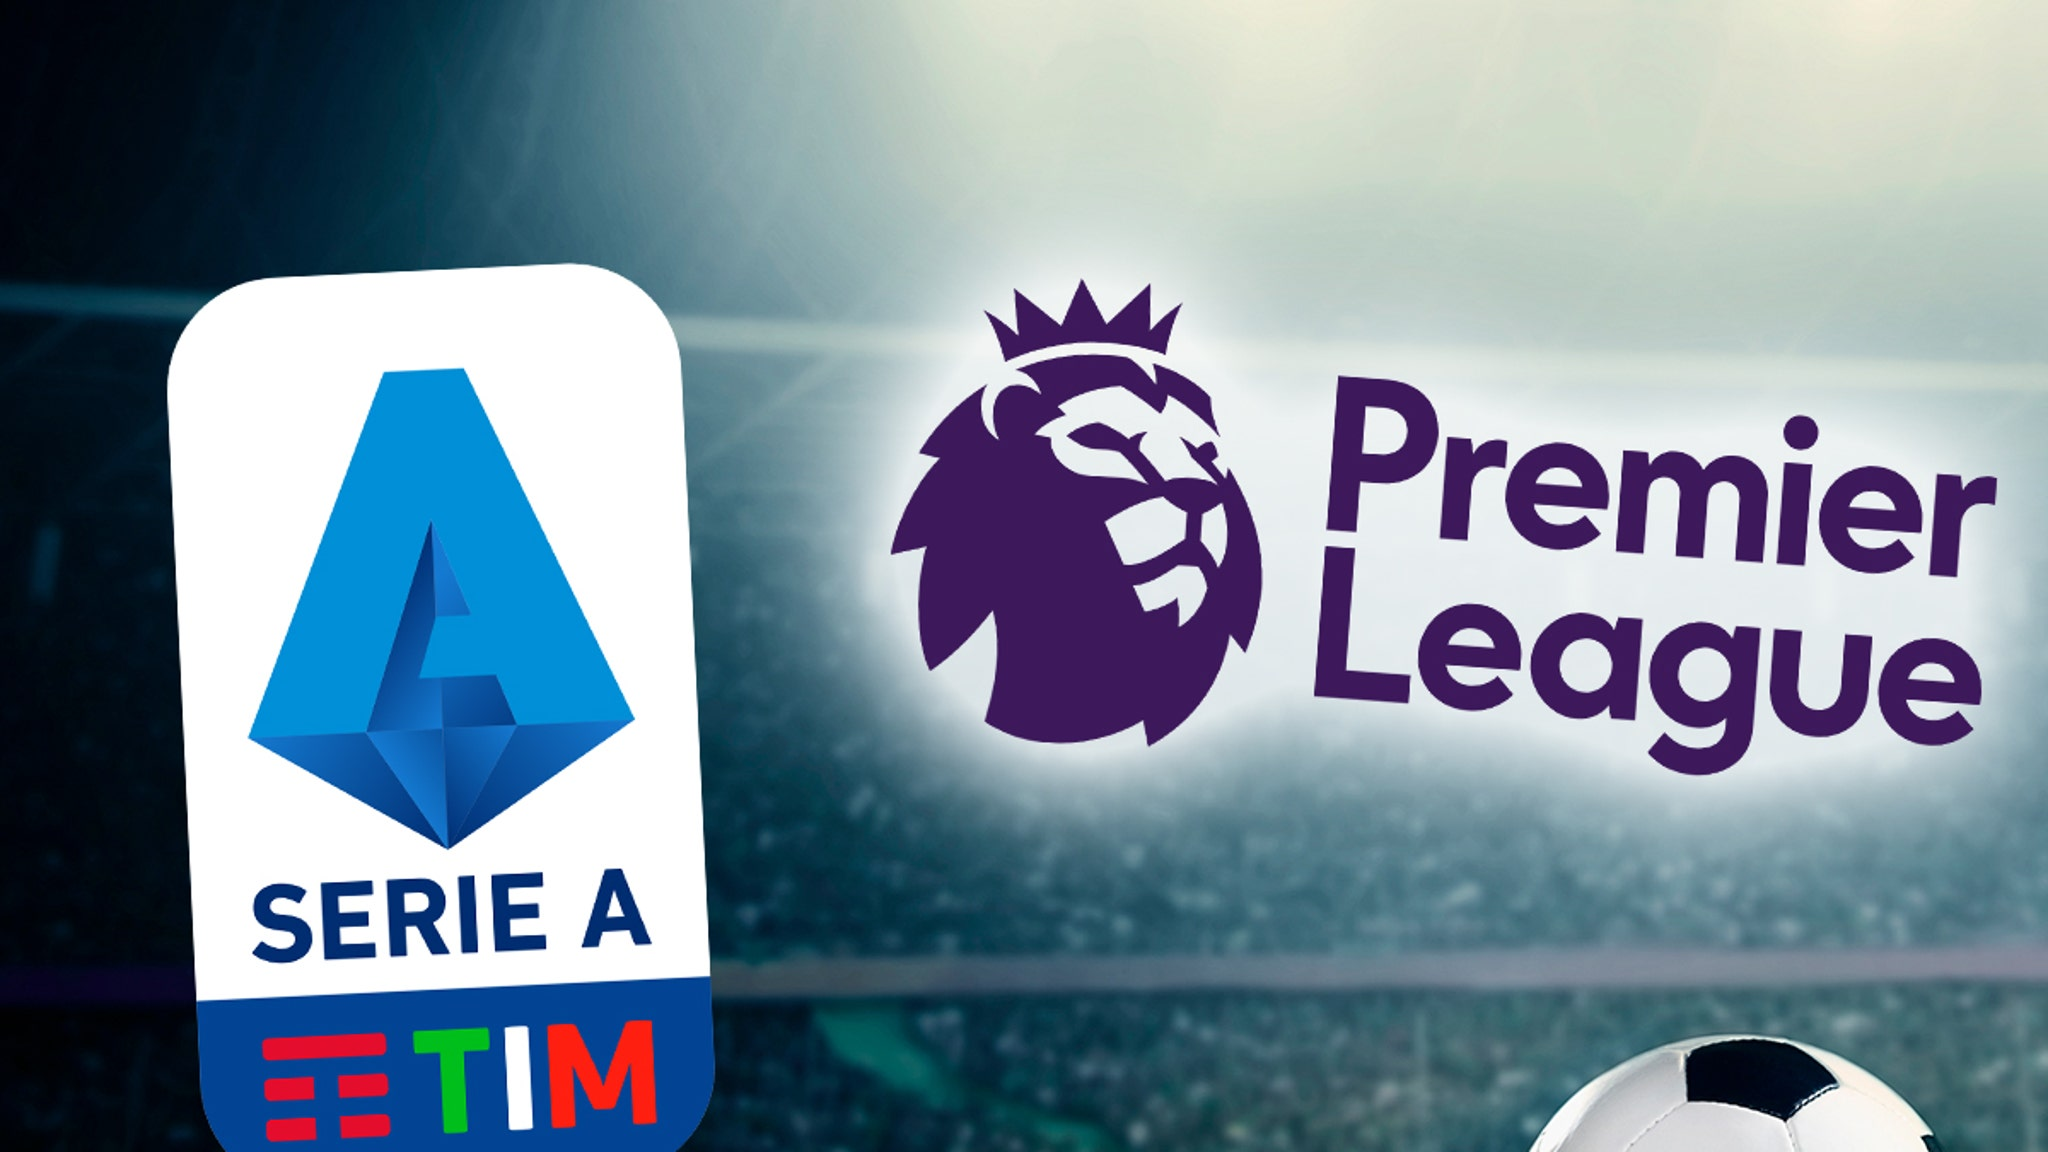 Premier League Serie A To Return In June After 3-Month COVID-19 Suspension